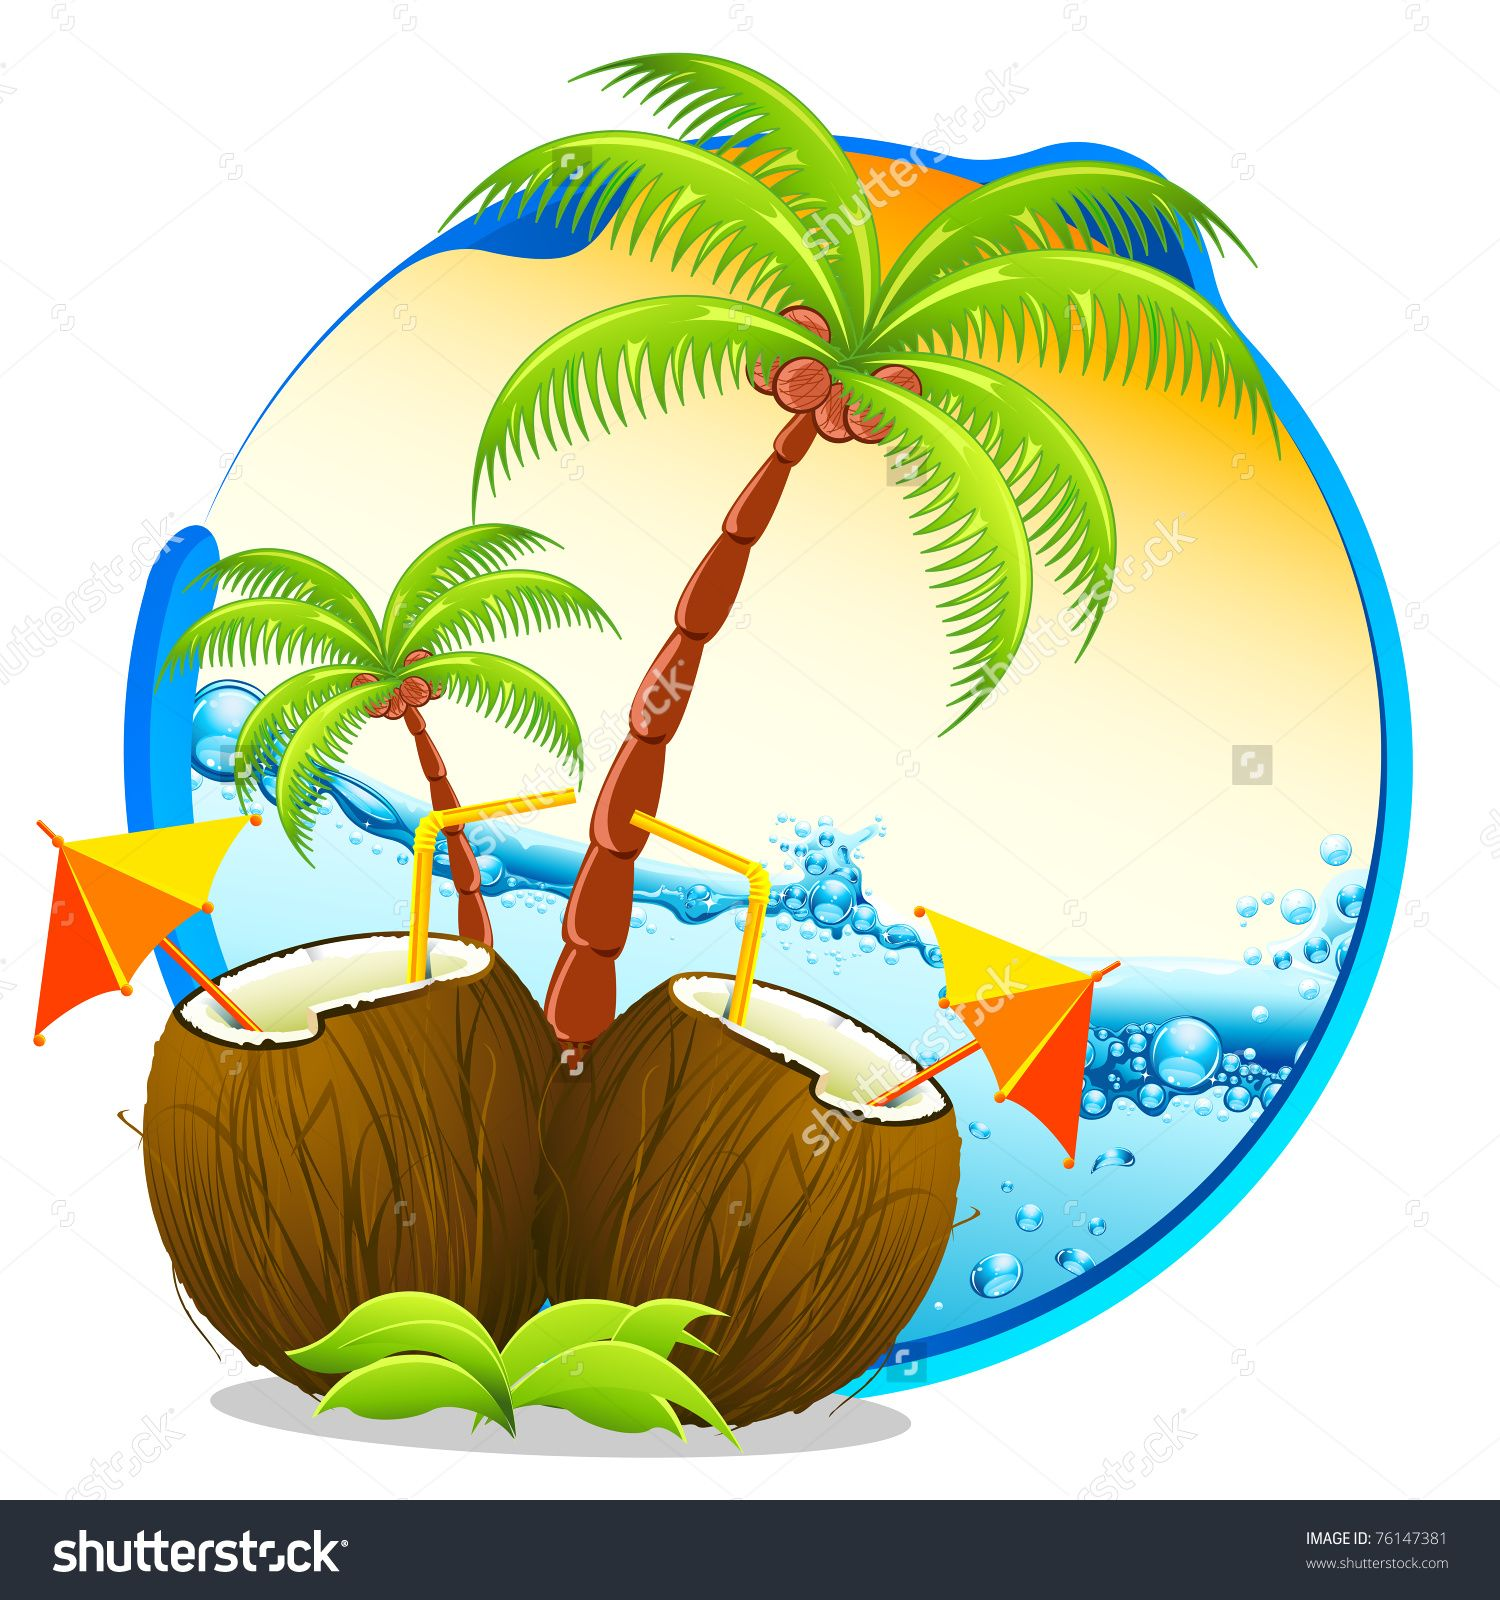 Illustration of coconut cocktail. Background clipart palm tree